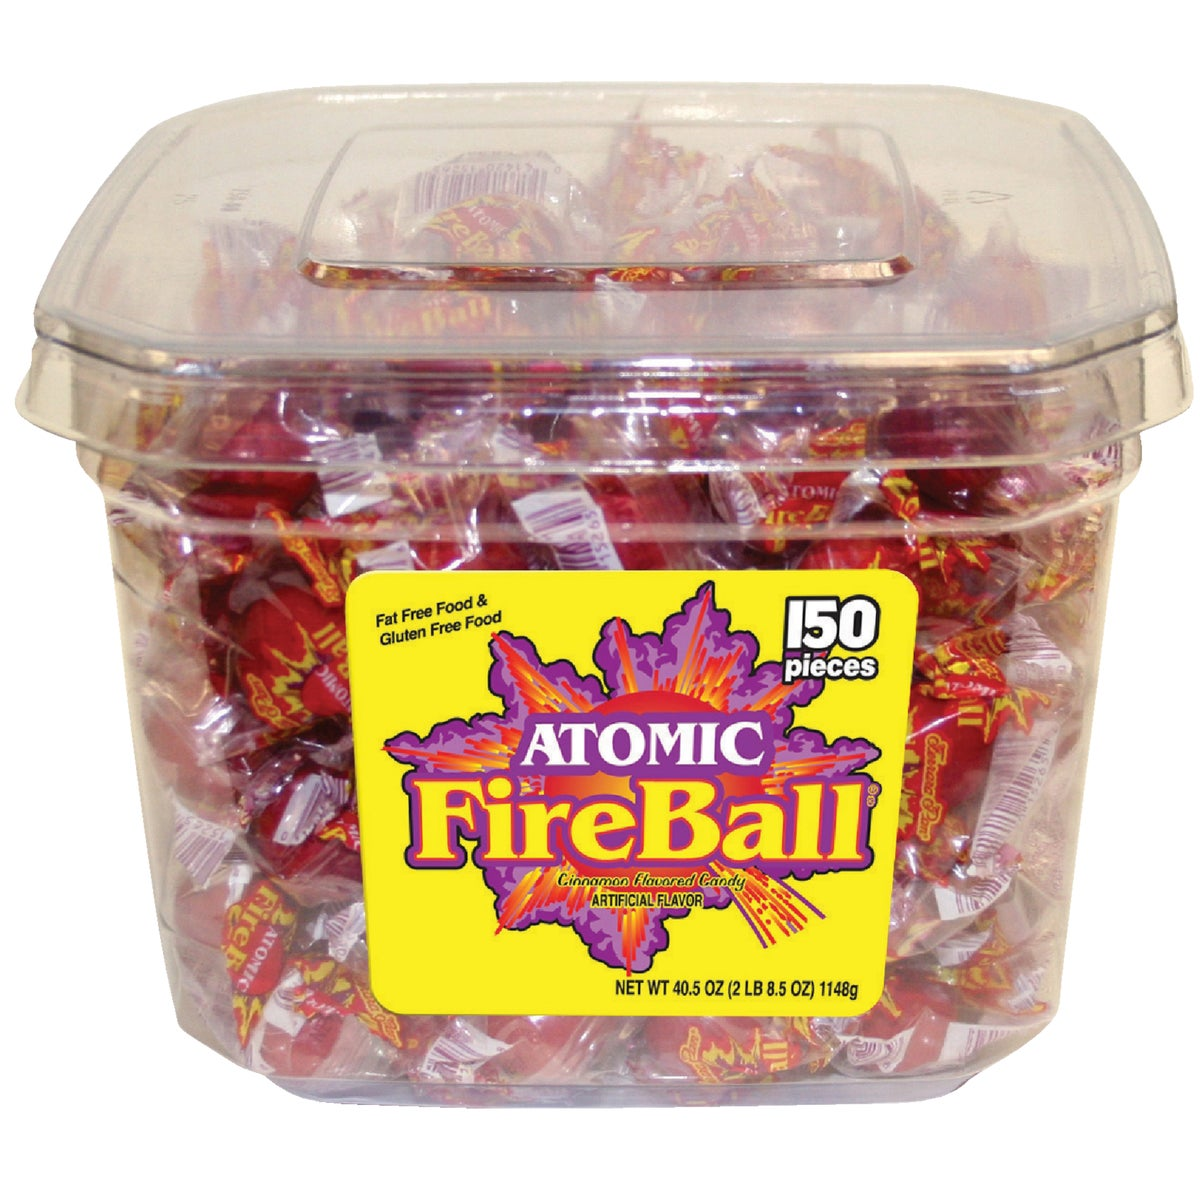 0.3Z ATOMIC FIREBALL TUB